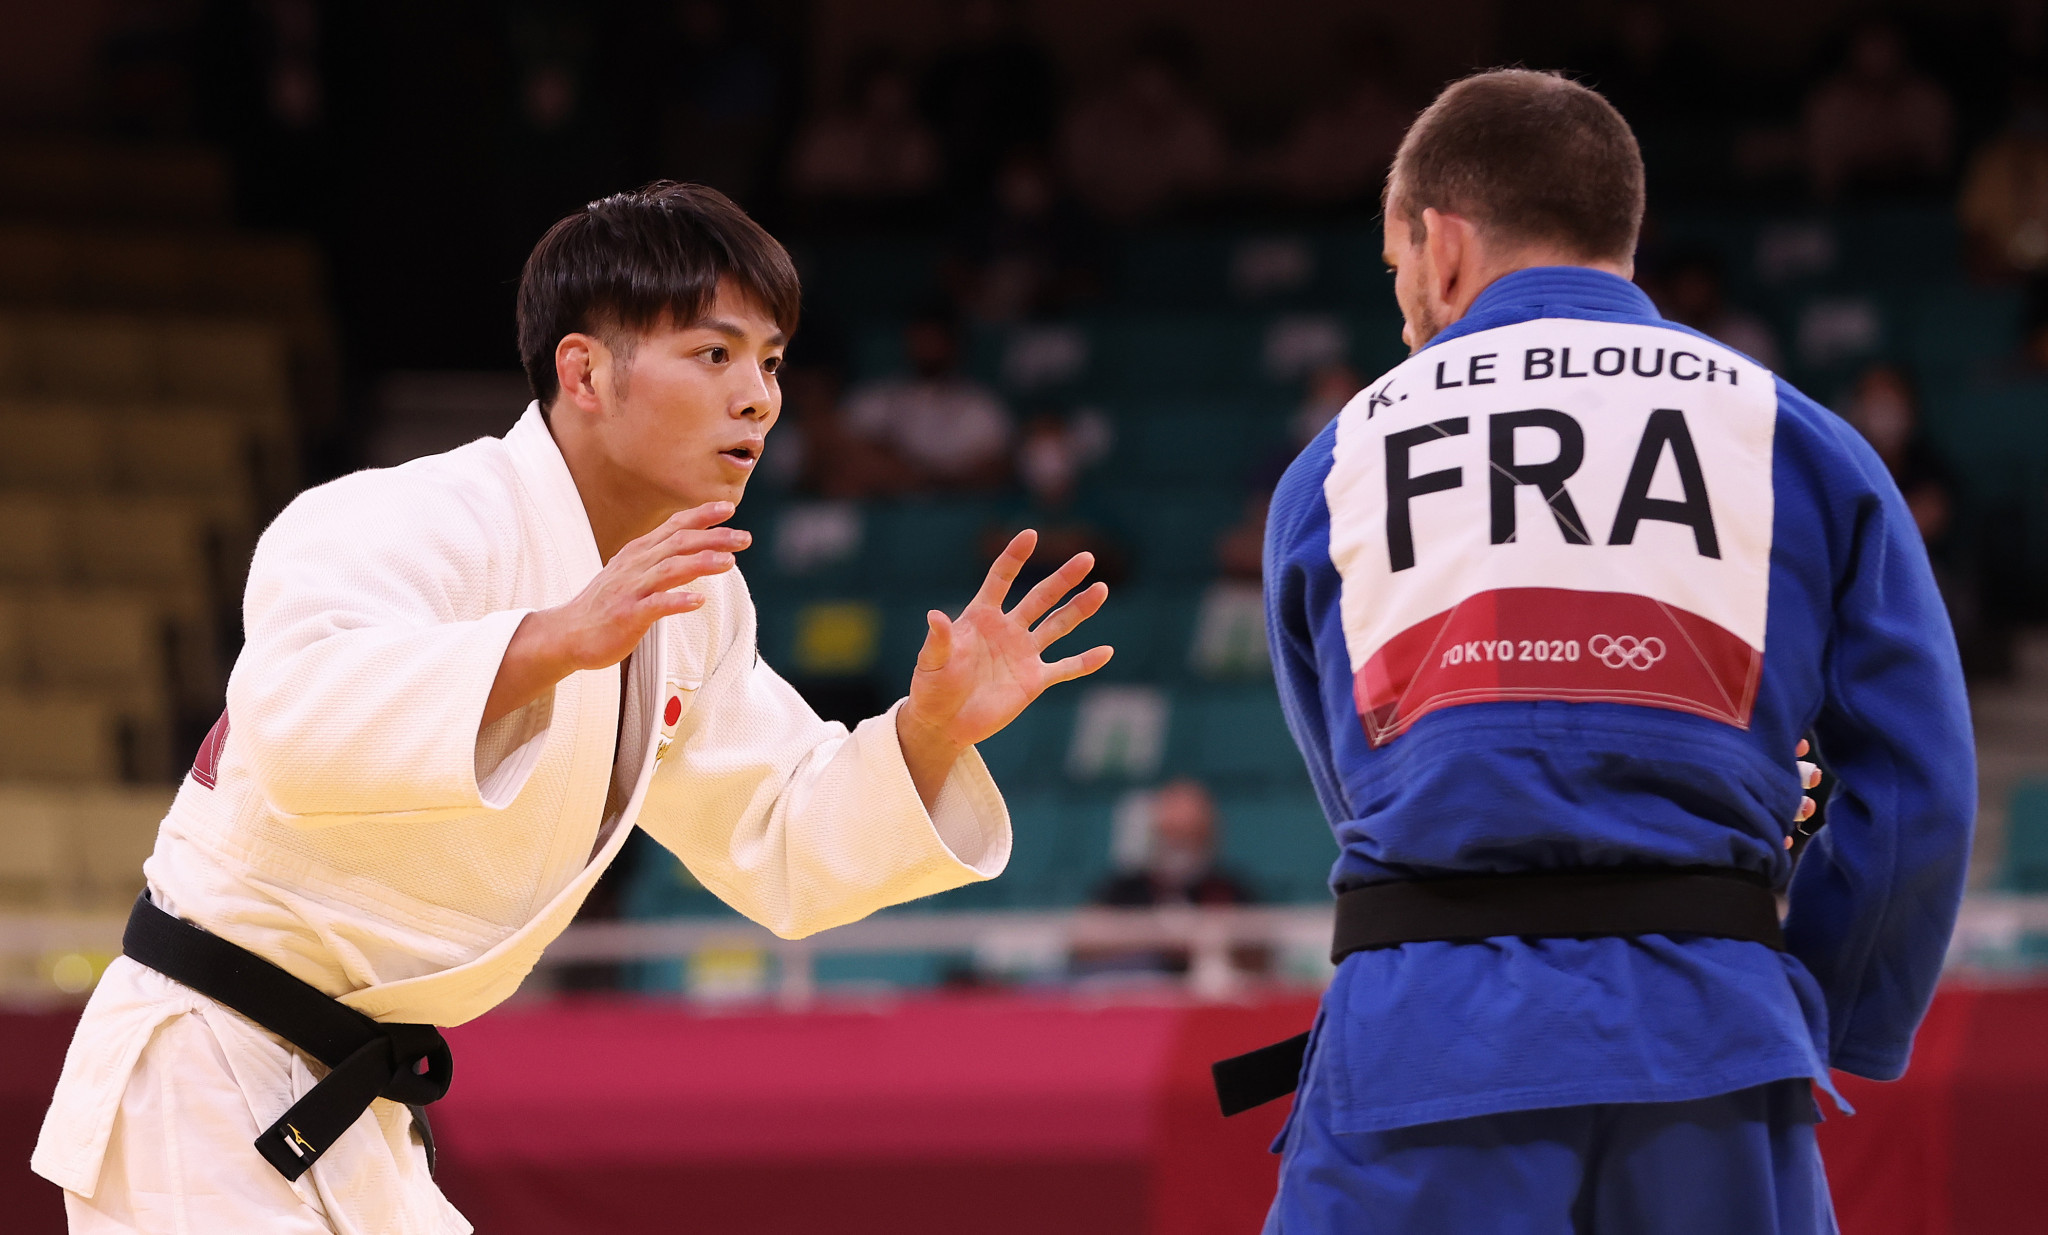 Japan's Hifumi Abe, left, won a judo gold medal in the men's under-66kg division ©Getty Images